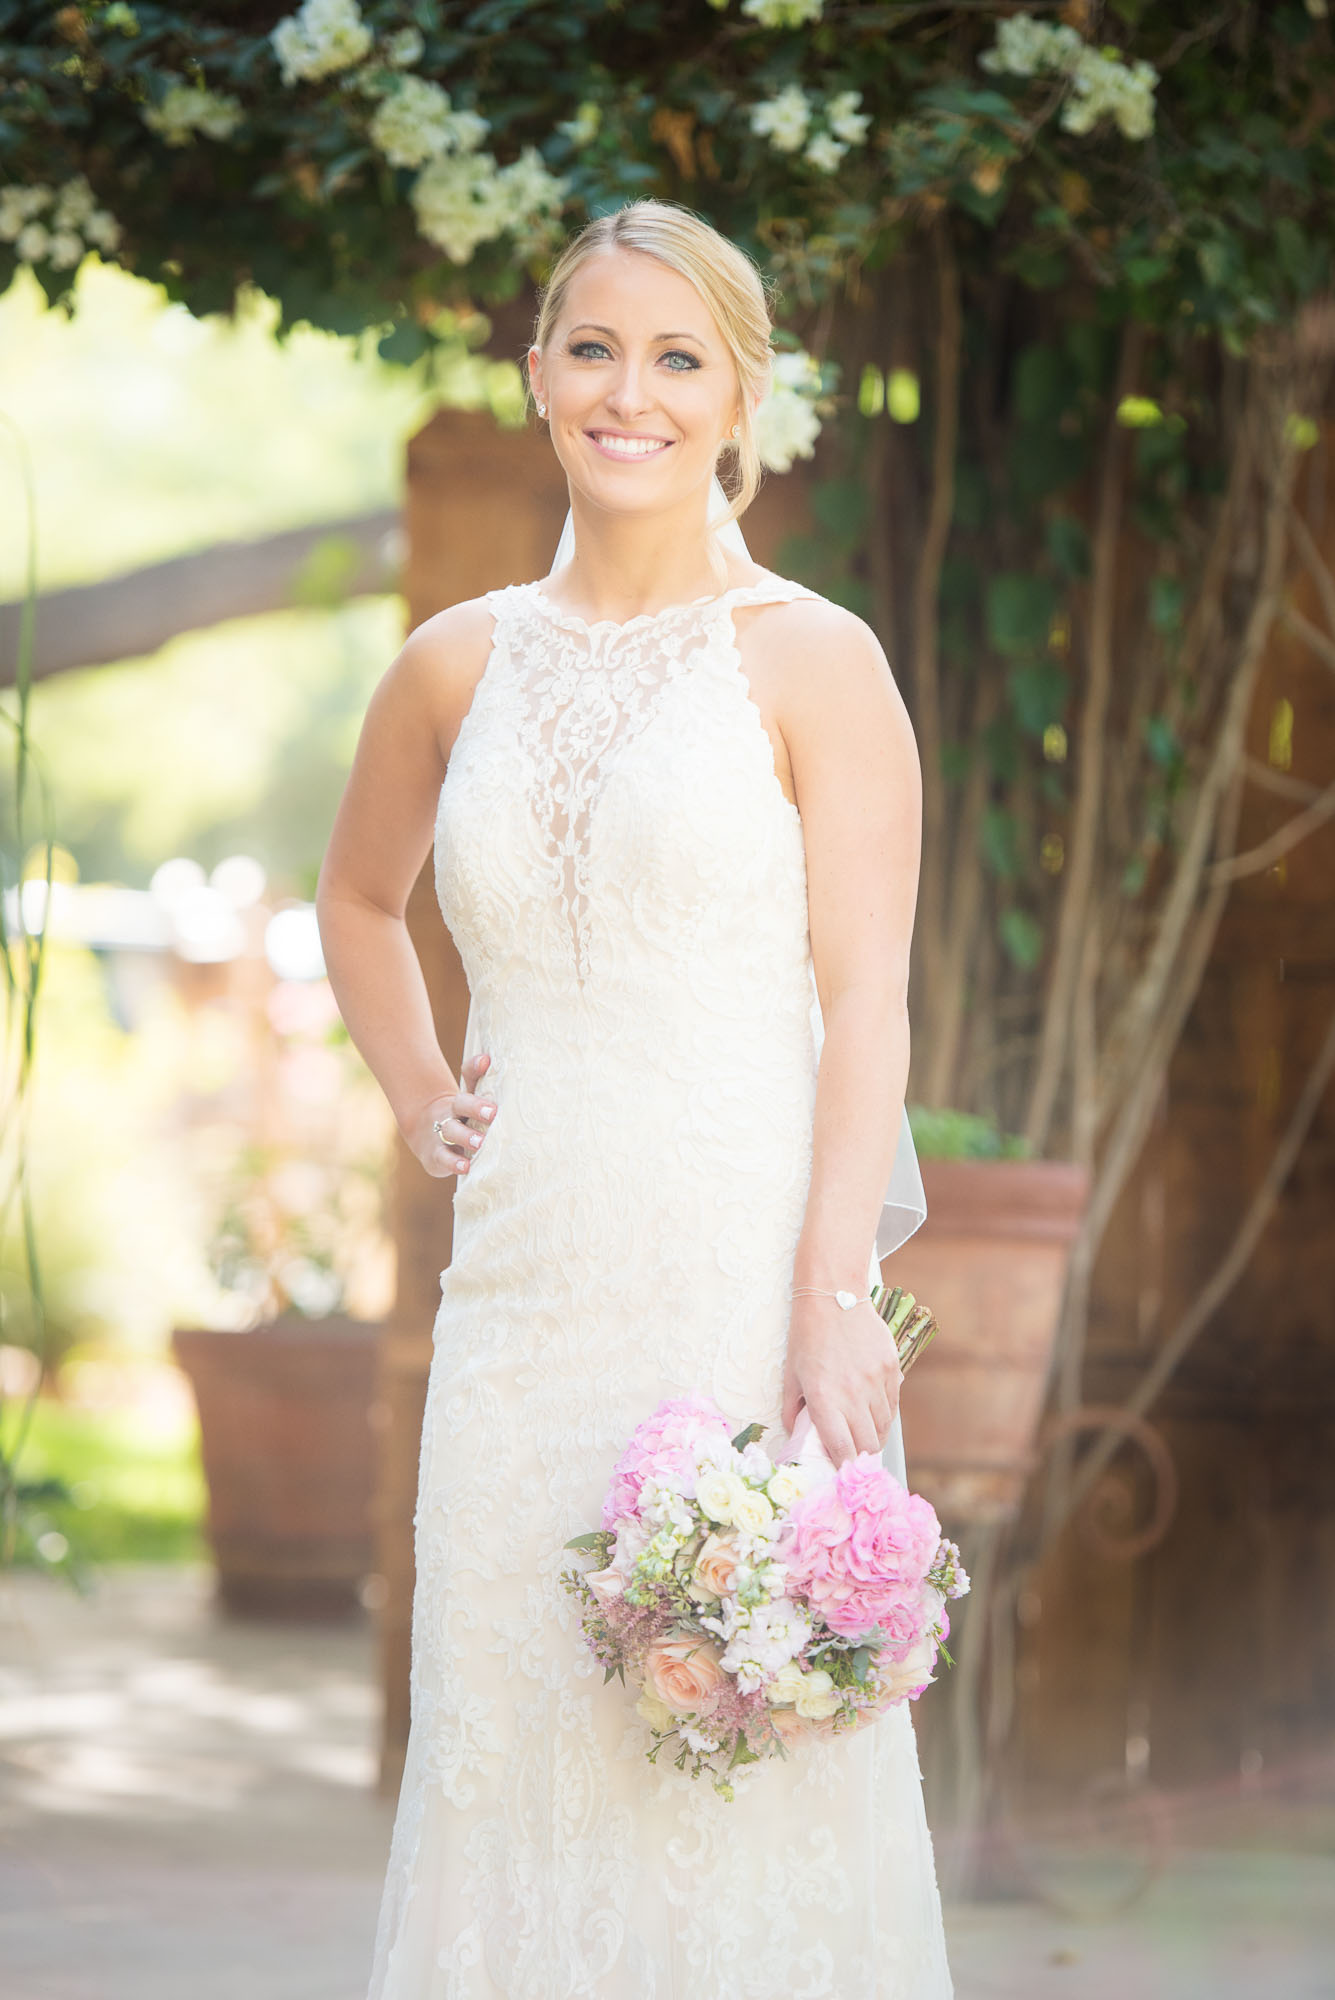 wedding flowers Archives - Fallbrook Photography